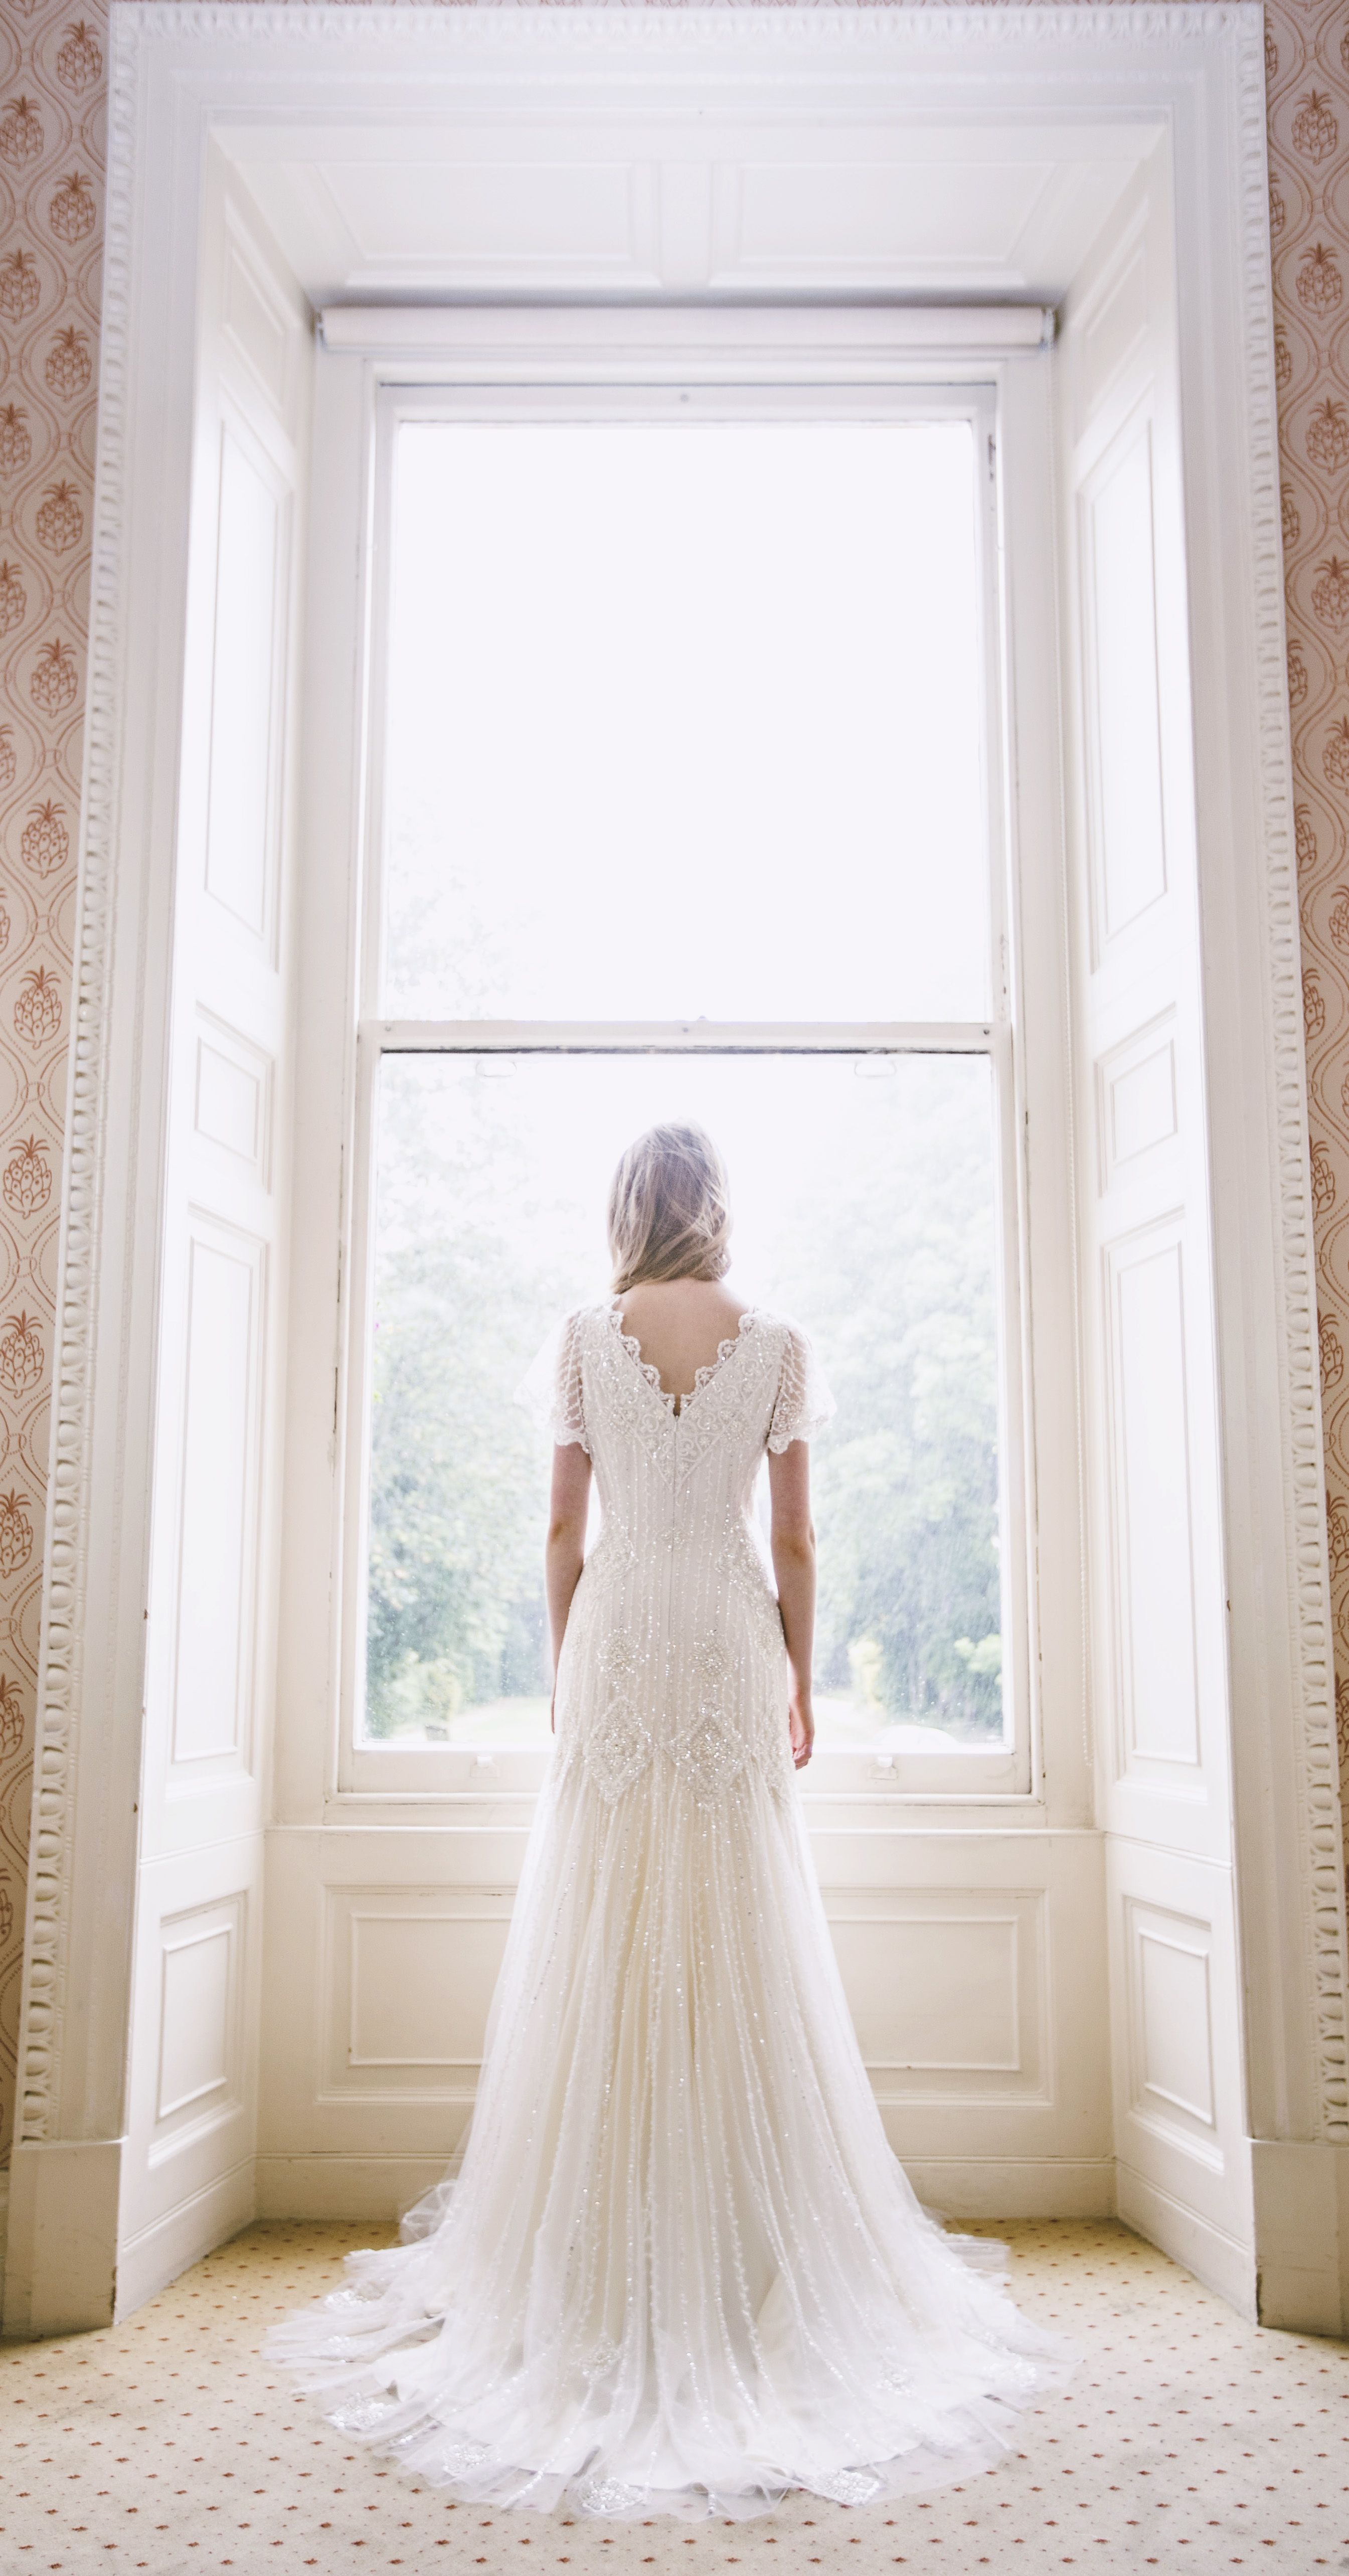 Beaded wedding dress by Mishi May. bridal couture. hand made in ...